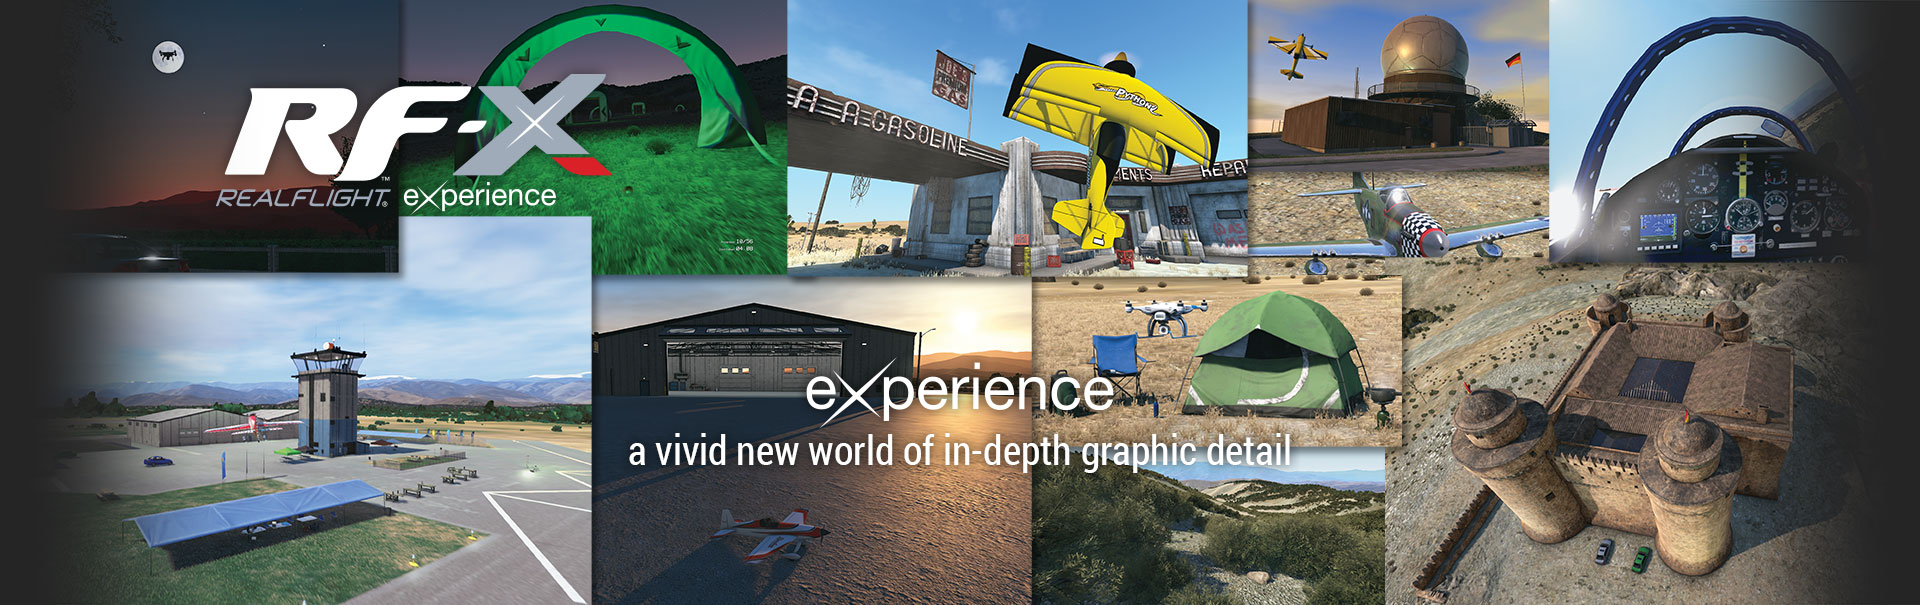 RF-X RealFlight Experience: Experience a vivid new world of in-depth graphic detail